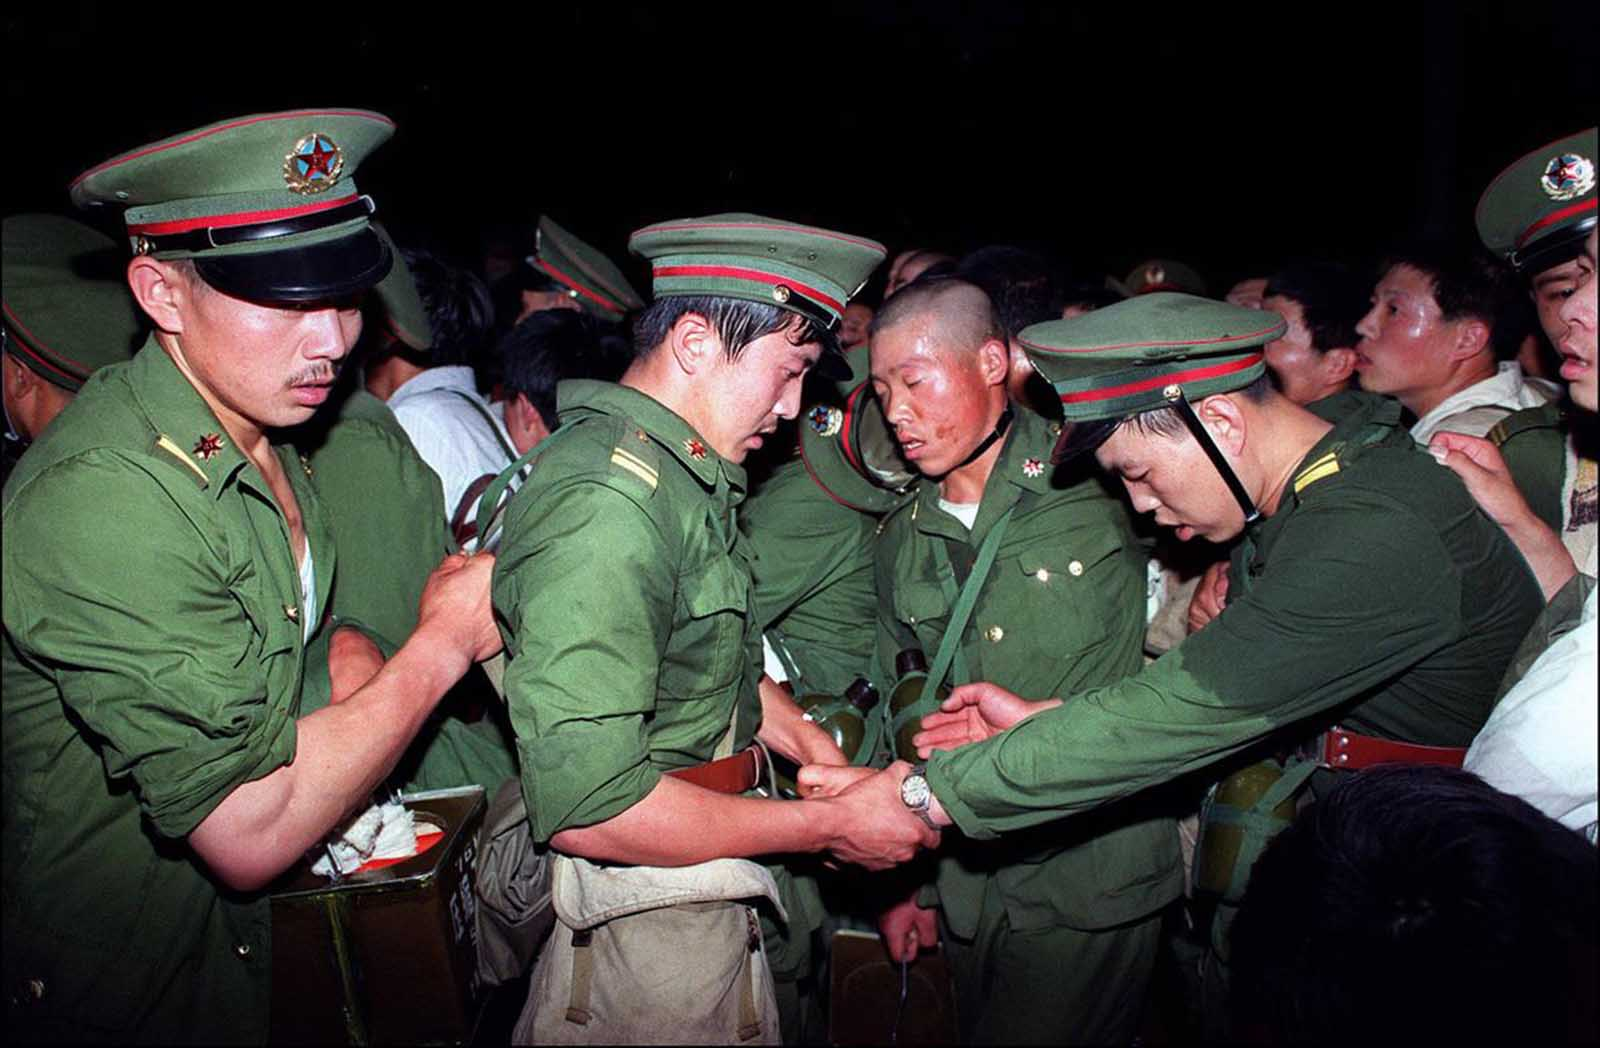 Exhausted, humiliated soldiers are hustled away by protesters in central Beijing, on June 3, 1989.